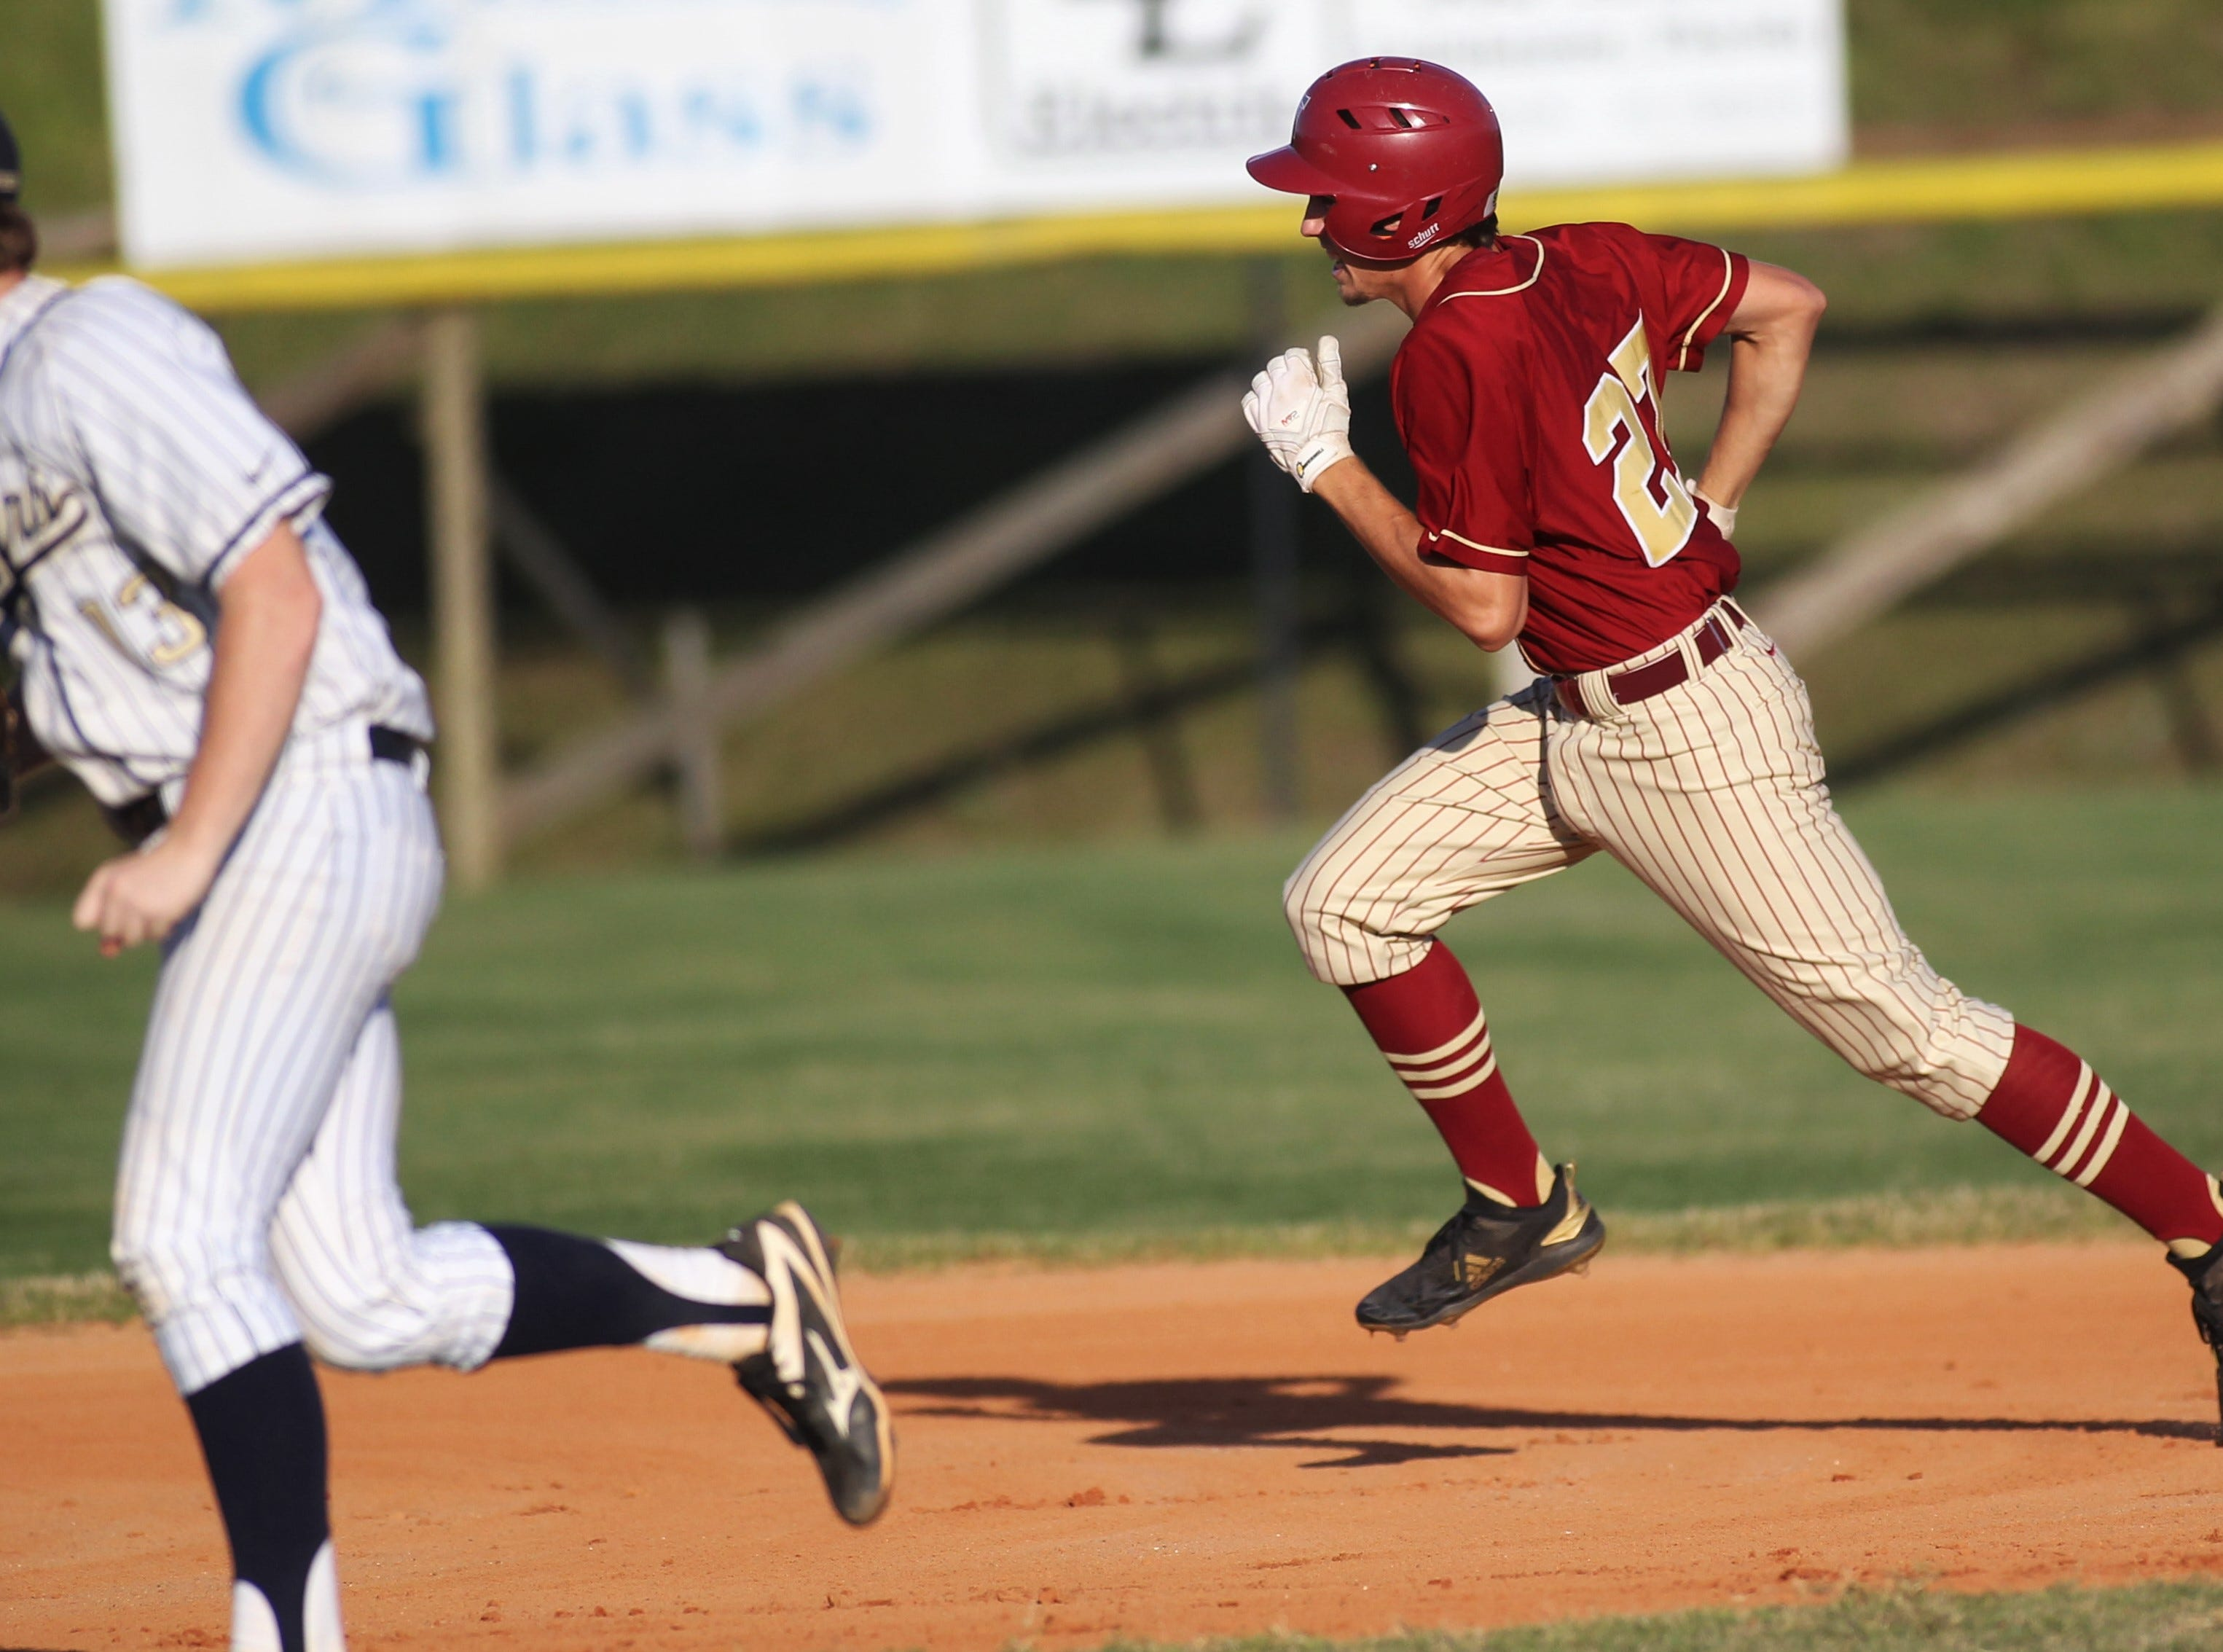 Florida High senior Bryson Mills runs towards second while while tripling as Florida High won 11-3 on the road at St. John Paul II on Tuesday, April 3, 2010.